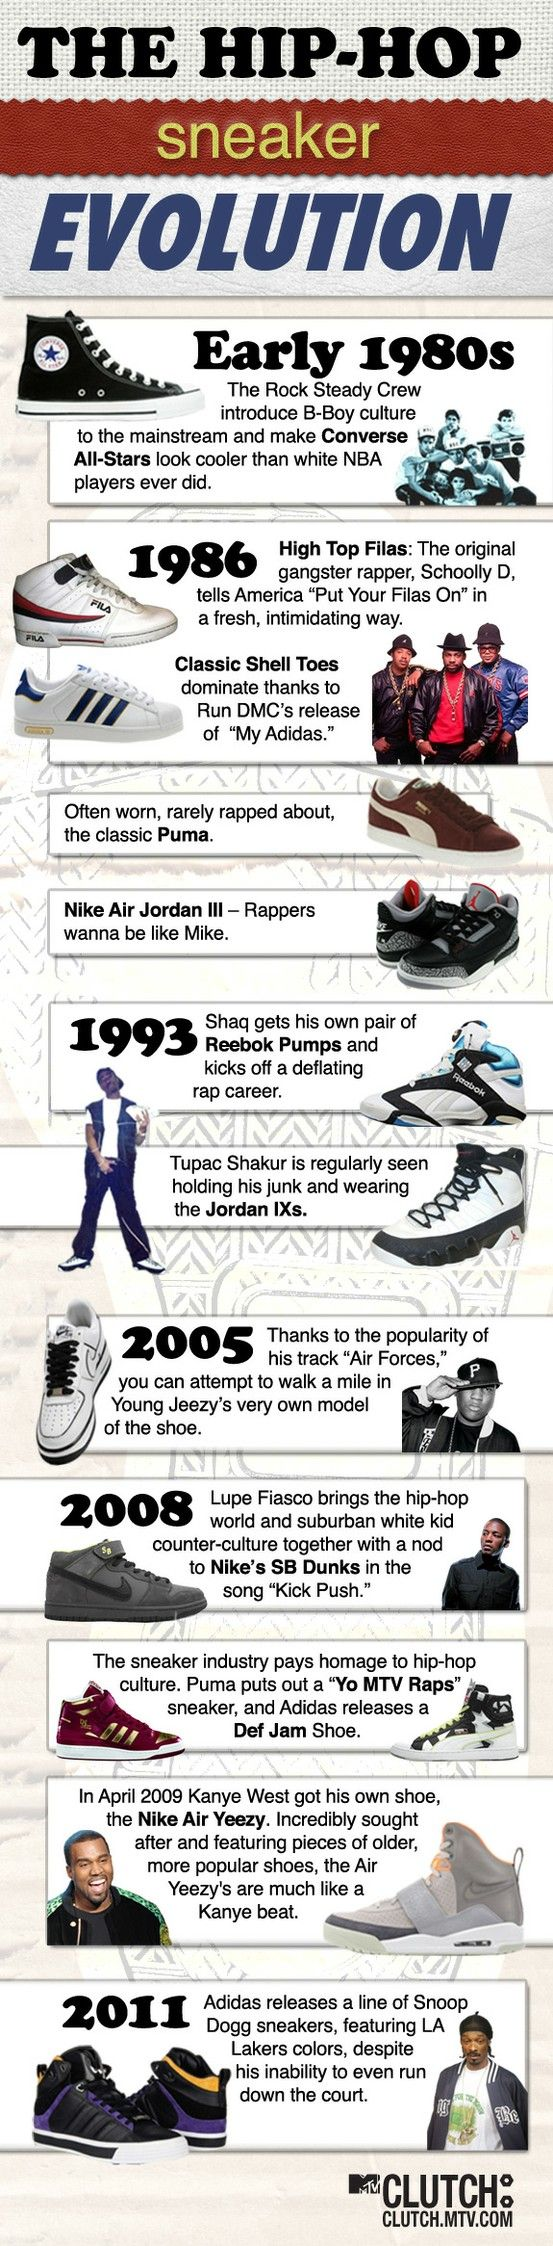 The HIP-HOP sneaker evolution.